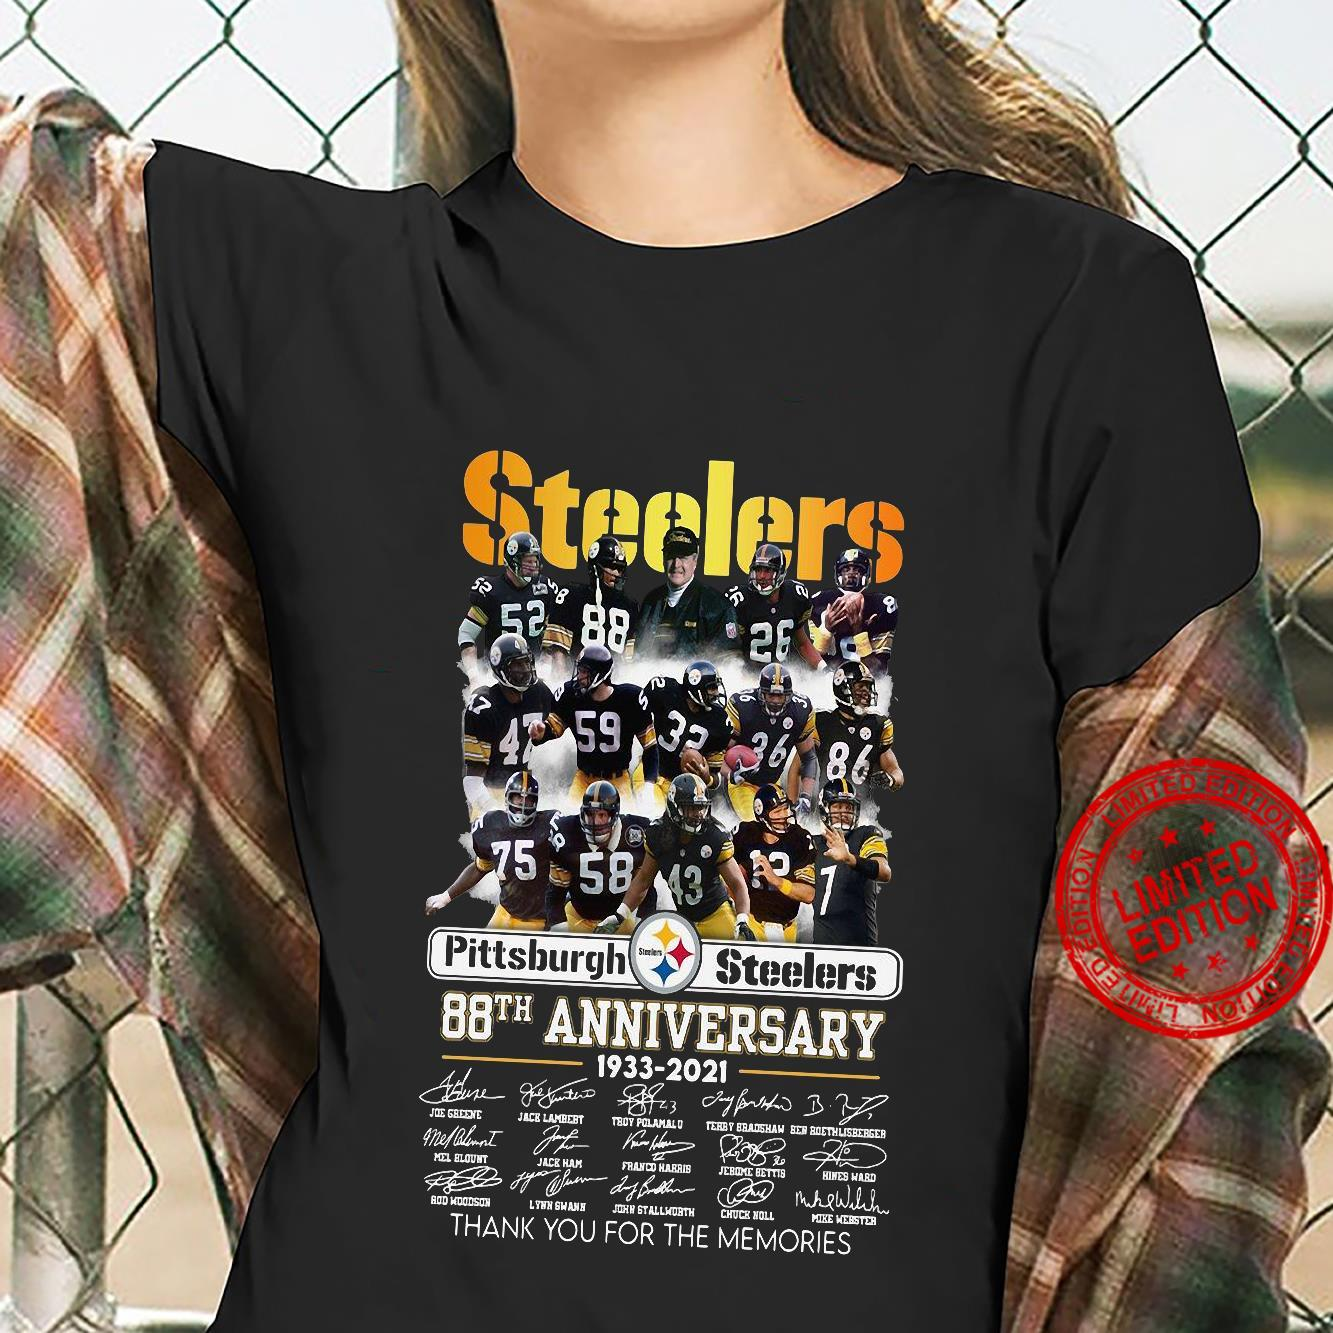 Steelers pittsburgh steelers 88th anniversary 1933 2021 thank you for the memories shirt ladies tee